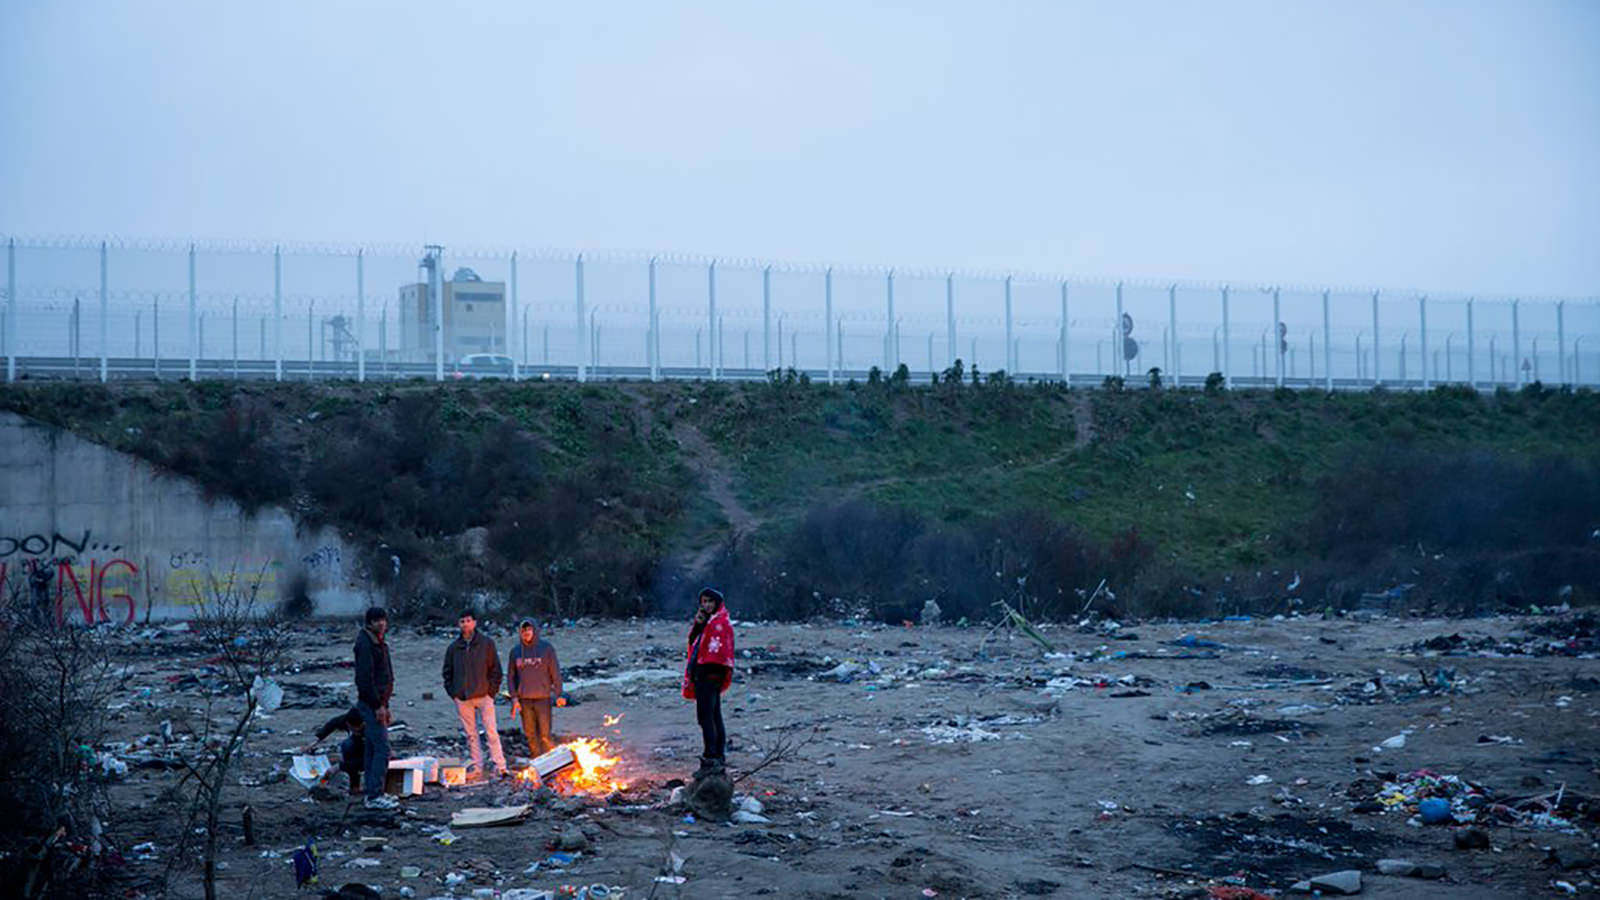 France: 'Jungle' camp demolitions and evictions must not bulldoze refugee rights